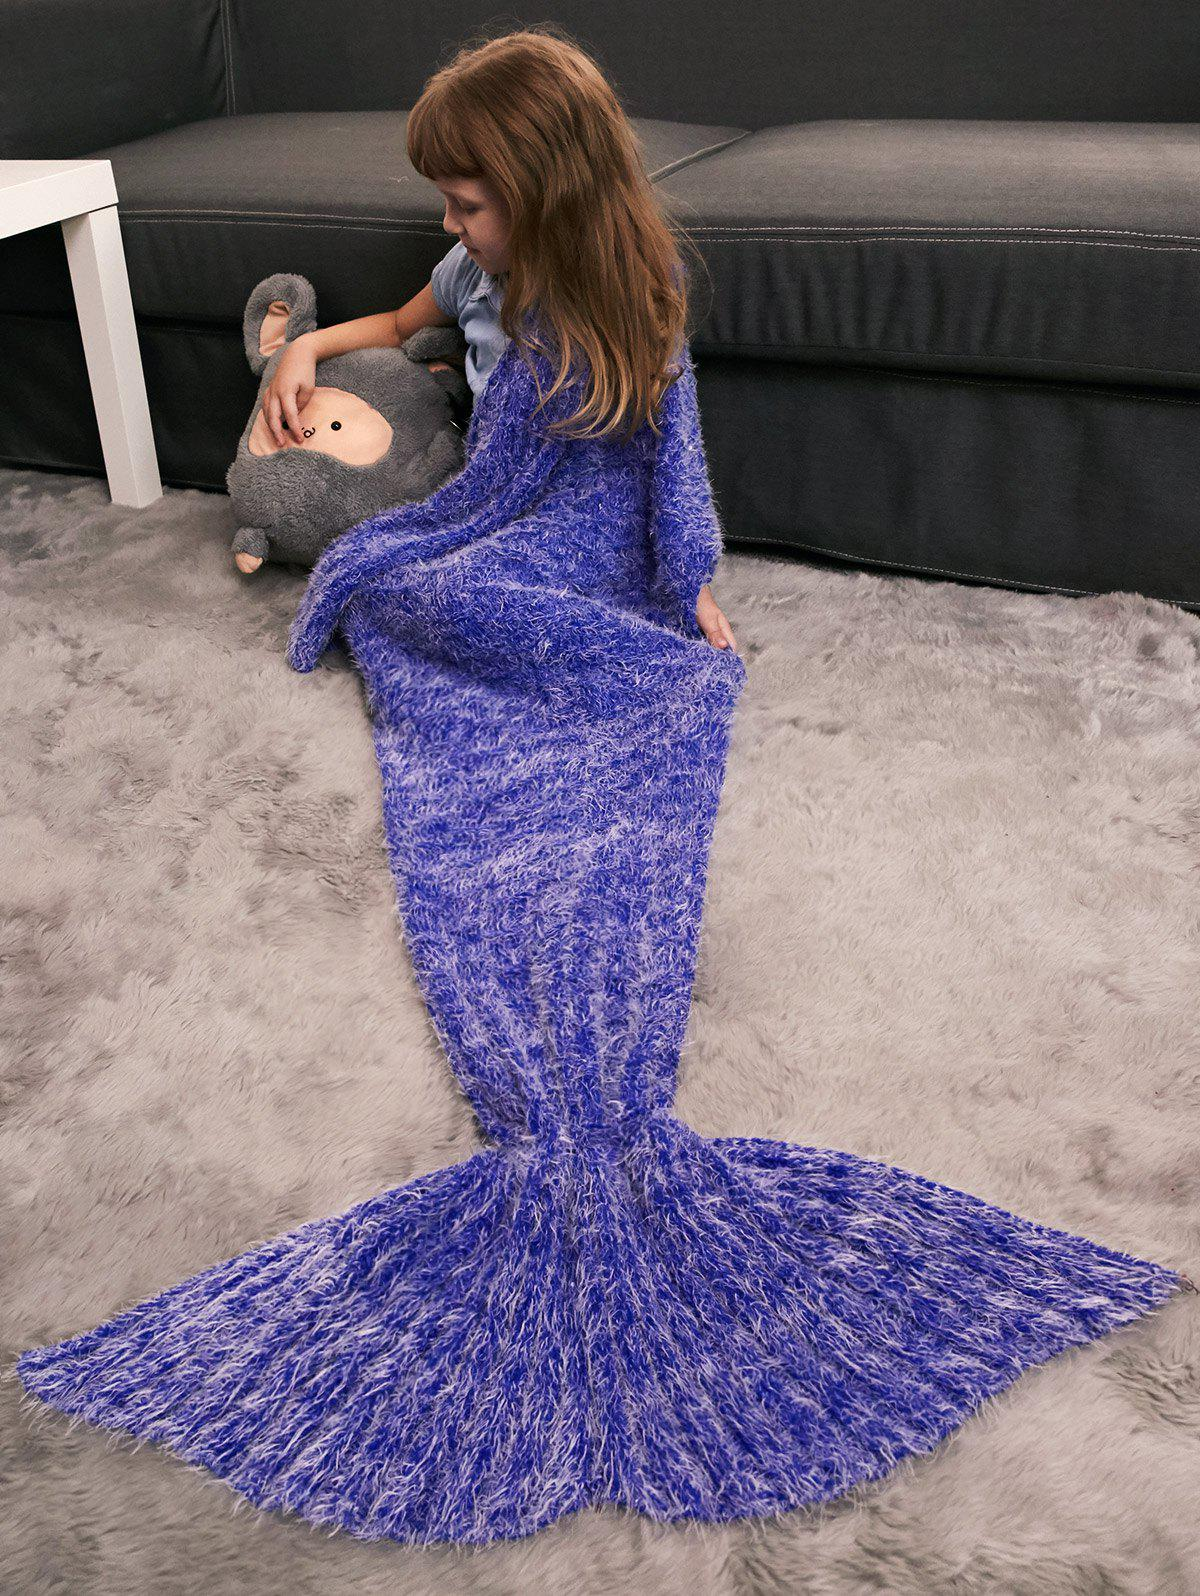 Crochet Knitted Faux Mohair Mermaid Blanket Throw For Kids - BLUE VIOLET